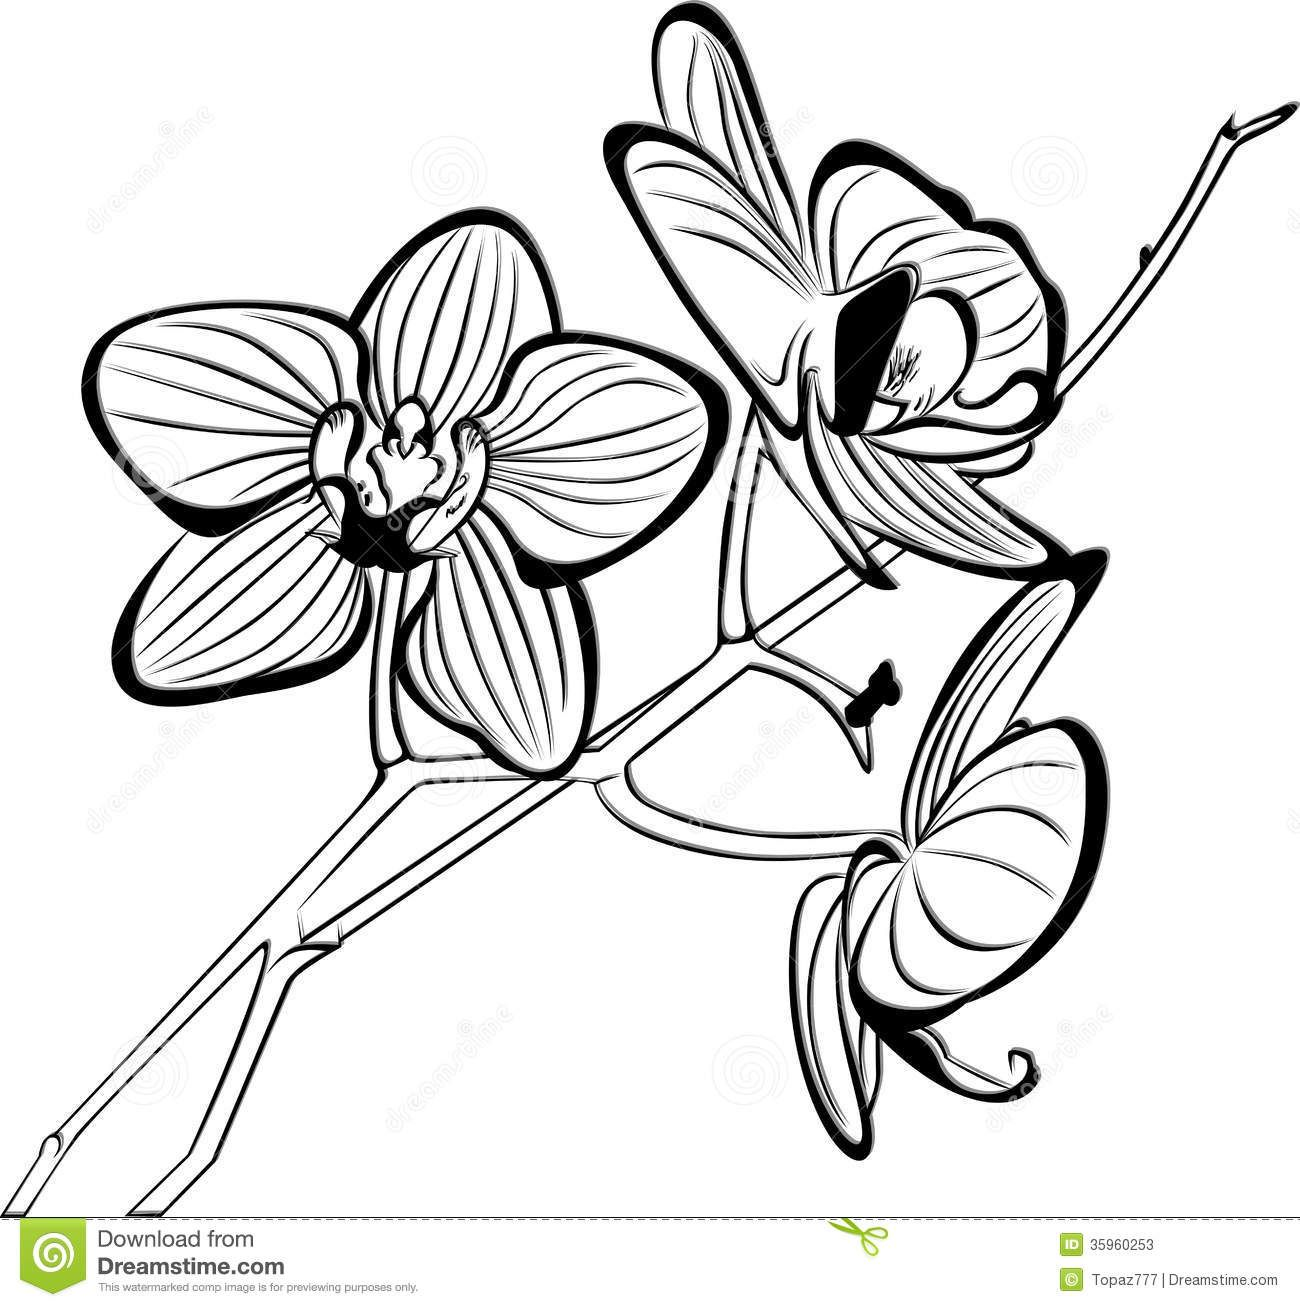 coloring pages of orchids | Tropical Flower Coloring - Viewing ...